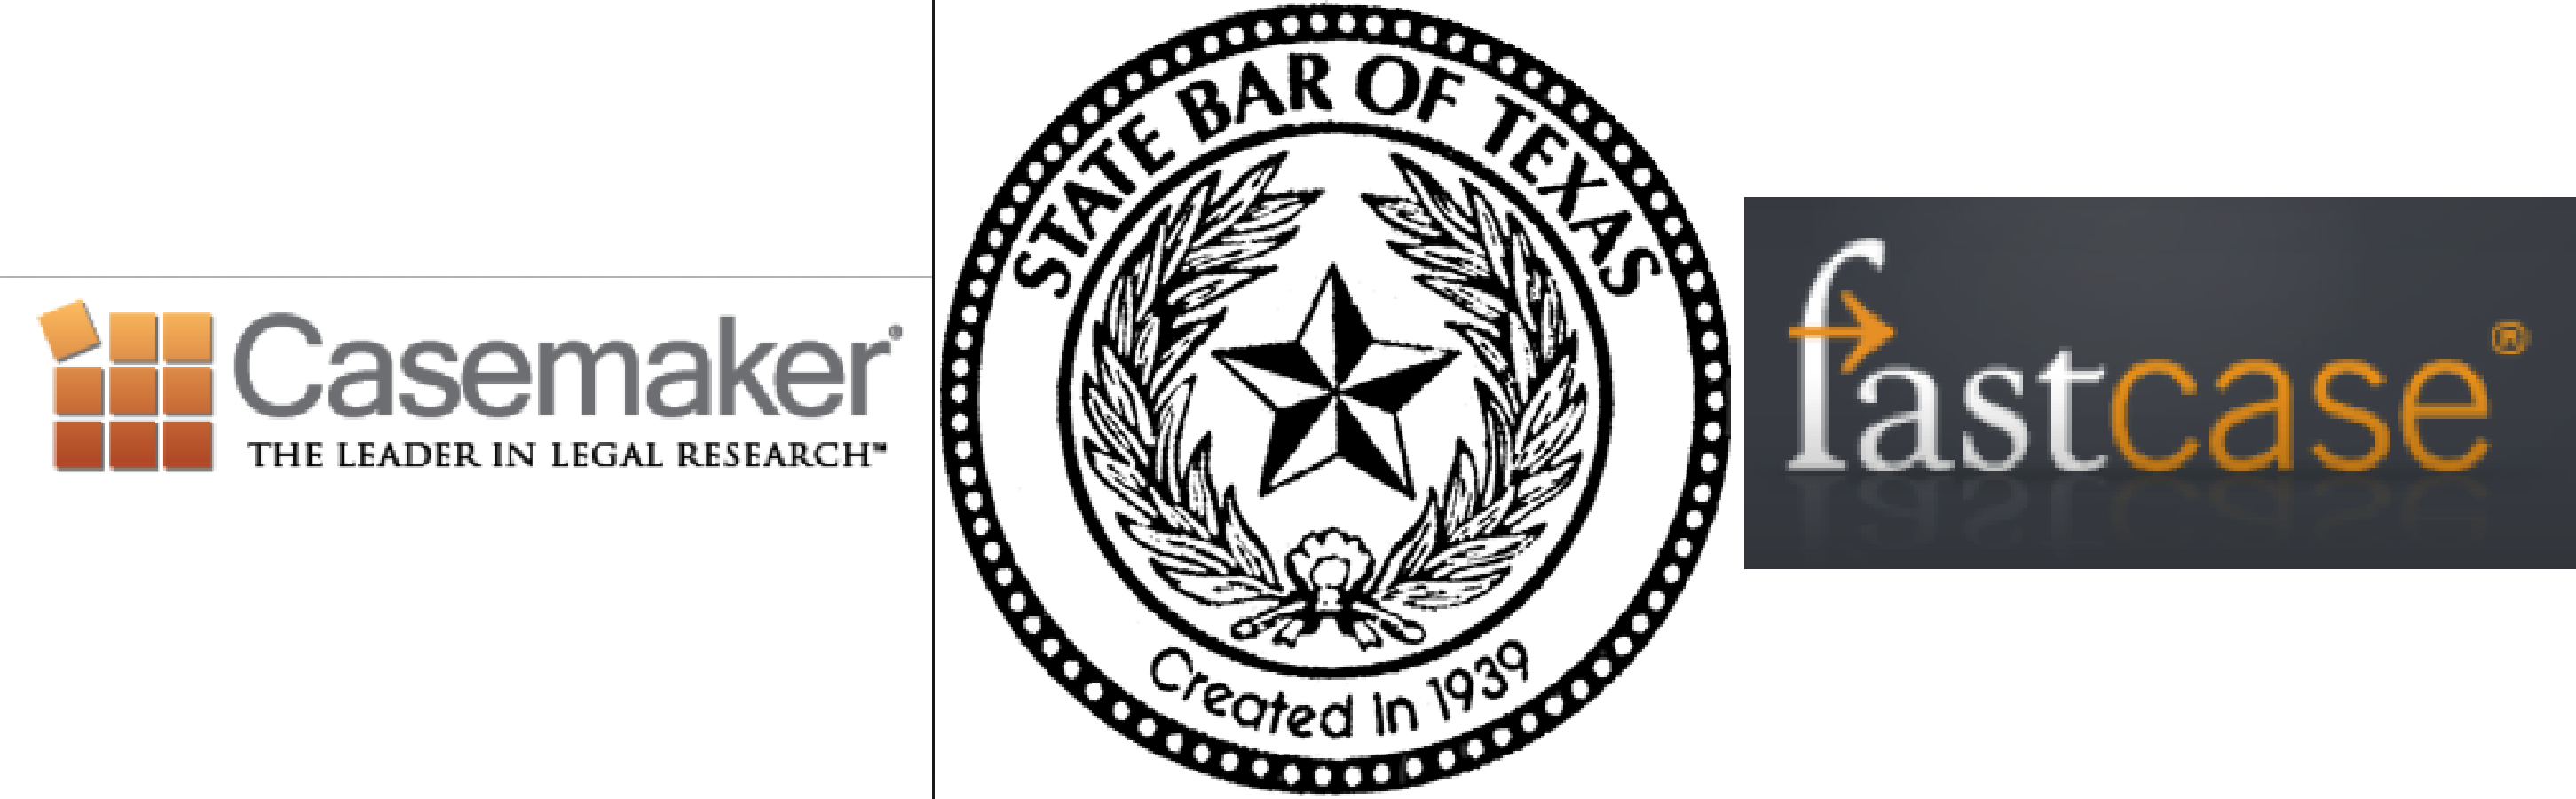 Texas Bar legal research databases